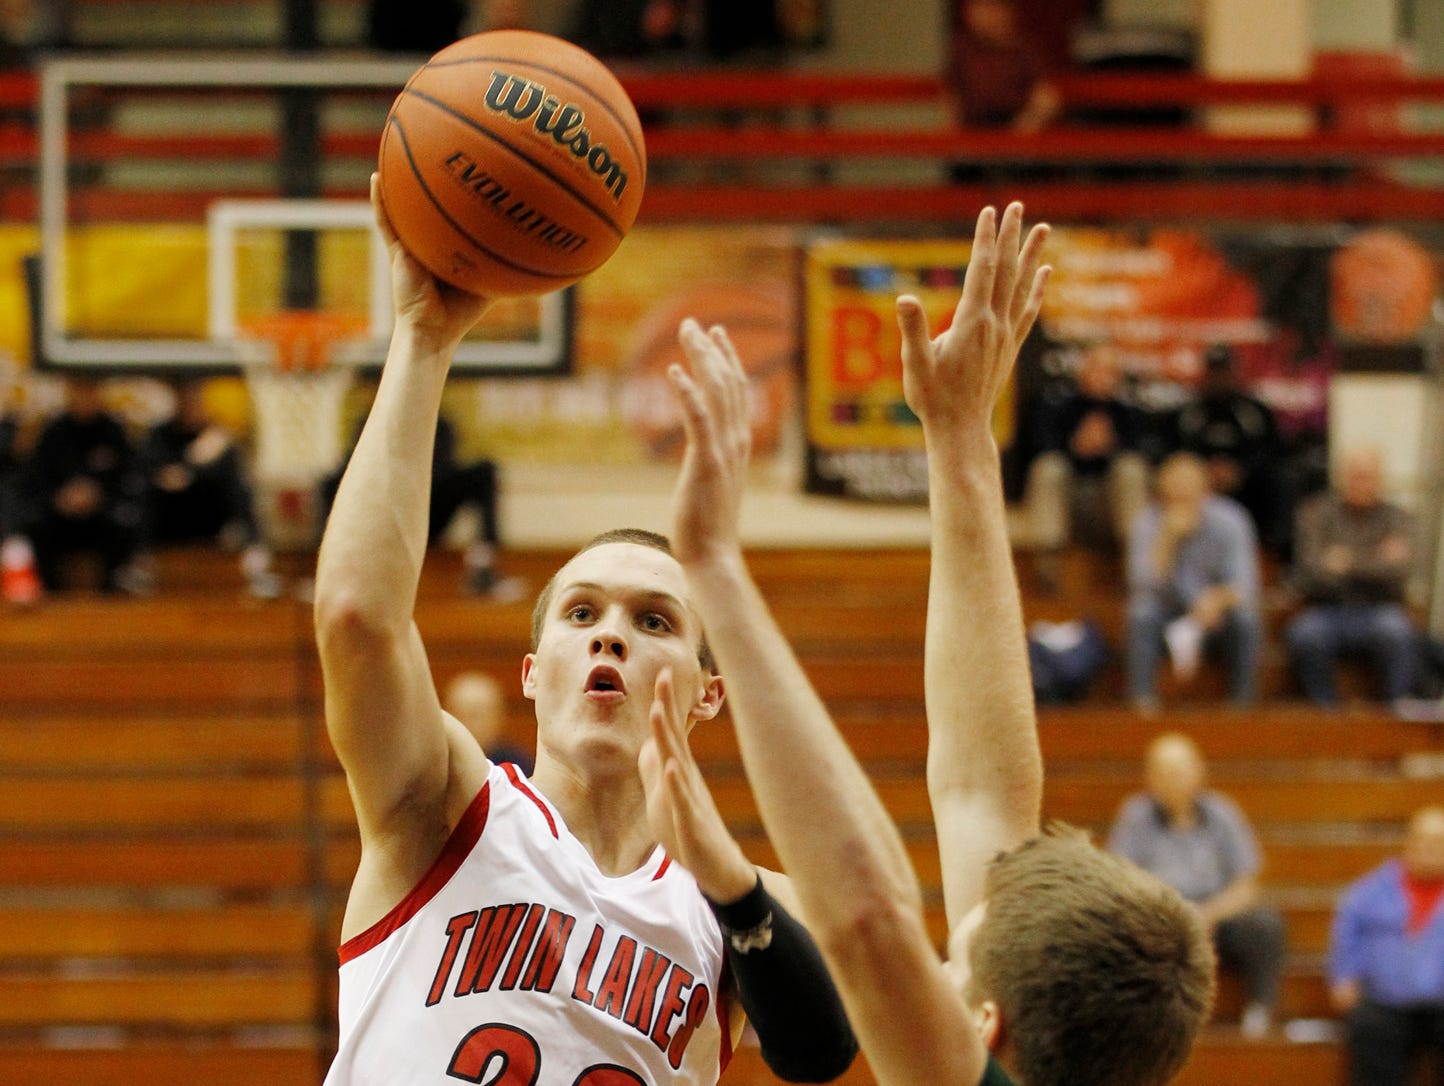 Bryce Bennington of Twin Lakes drives for a score against Benton Central in the J&C Hoops Classic Monday, November 30, 2015, at Jefferson High School. Twin Lakes thumped Benton Central 75-44.